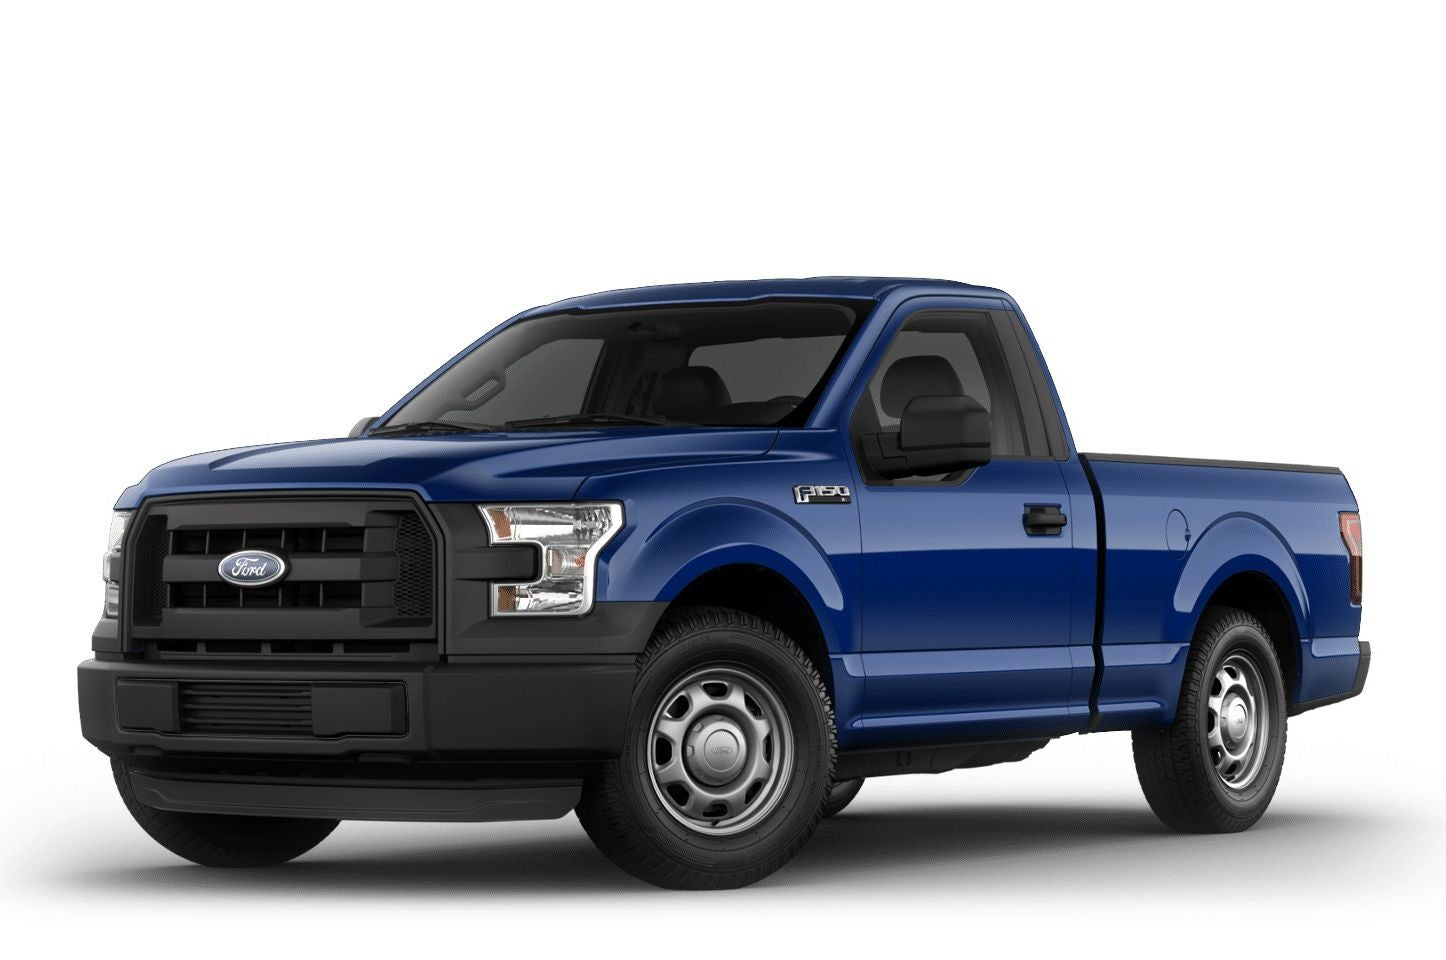 2017 ford f-150 xl | quirk ford of augusta specials hallowell, me